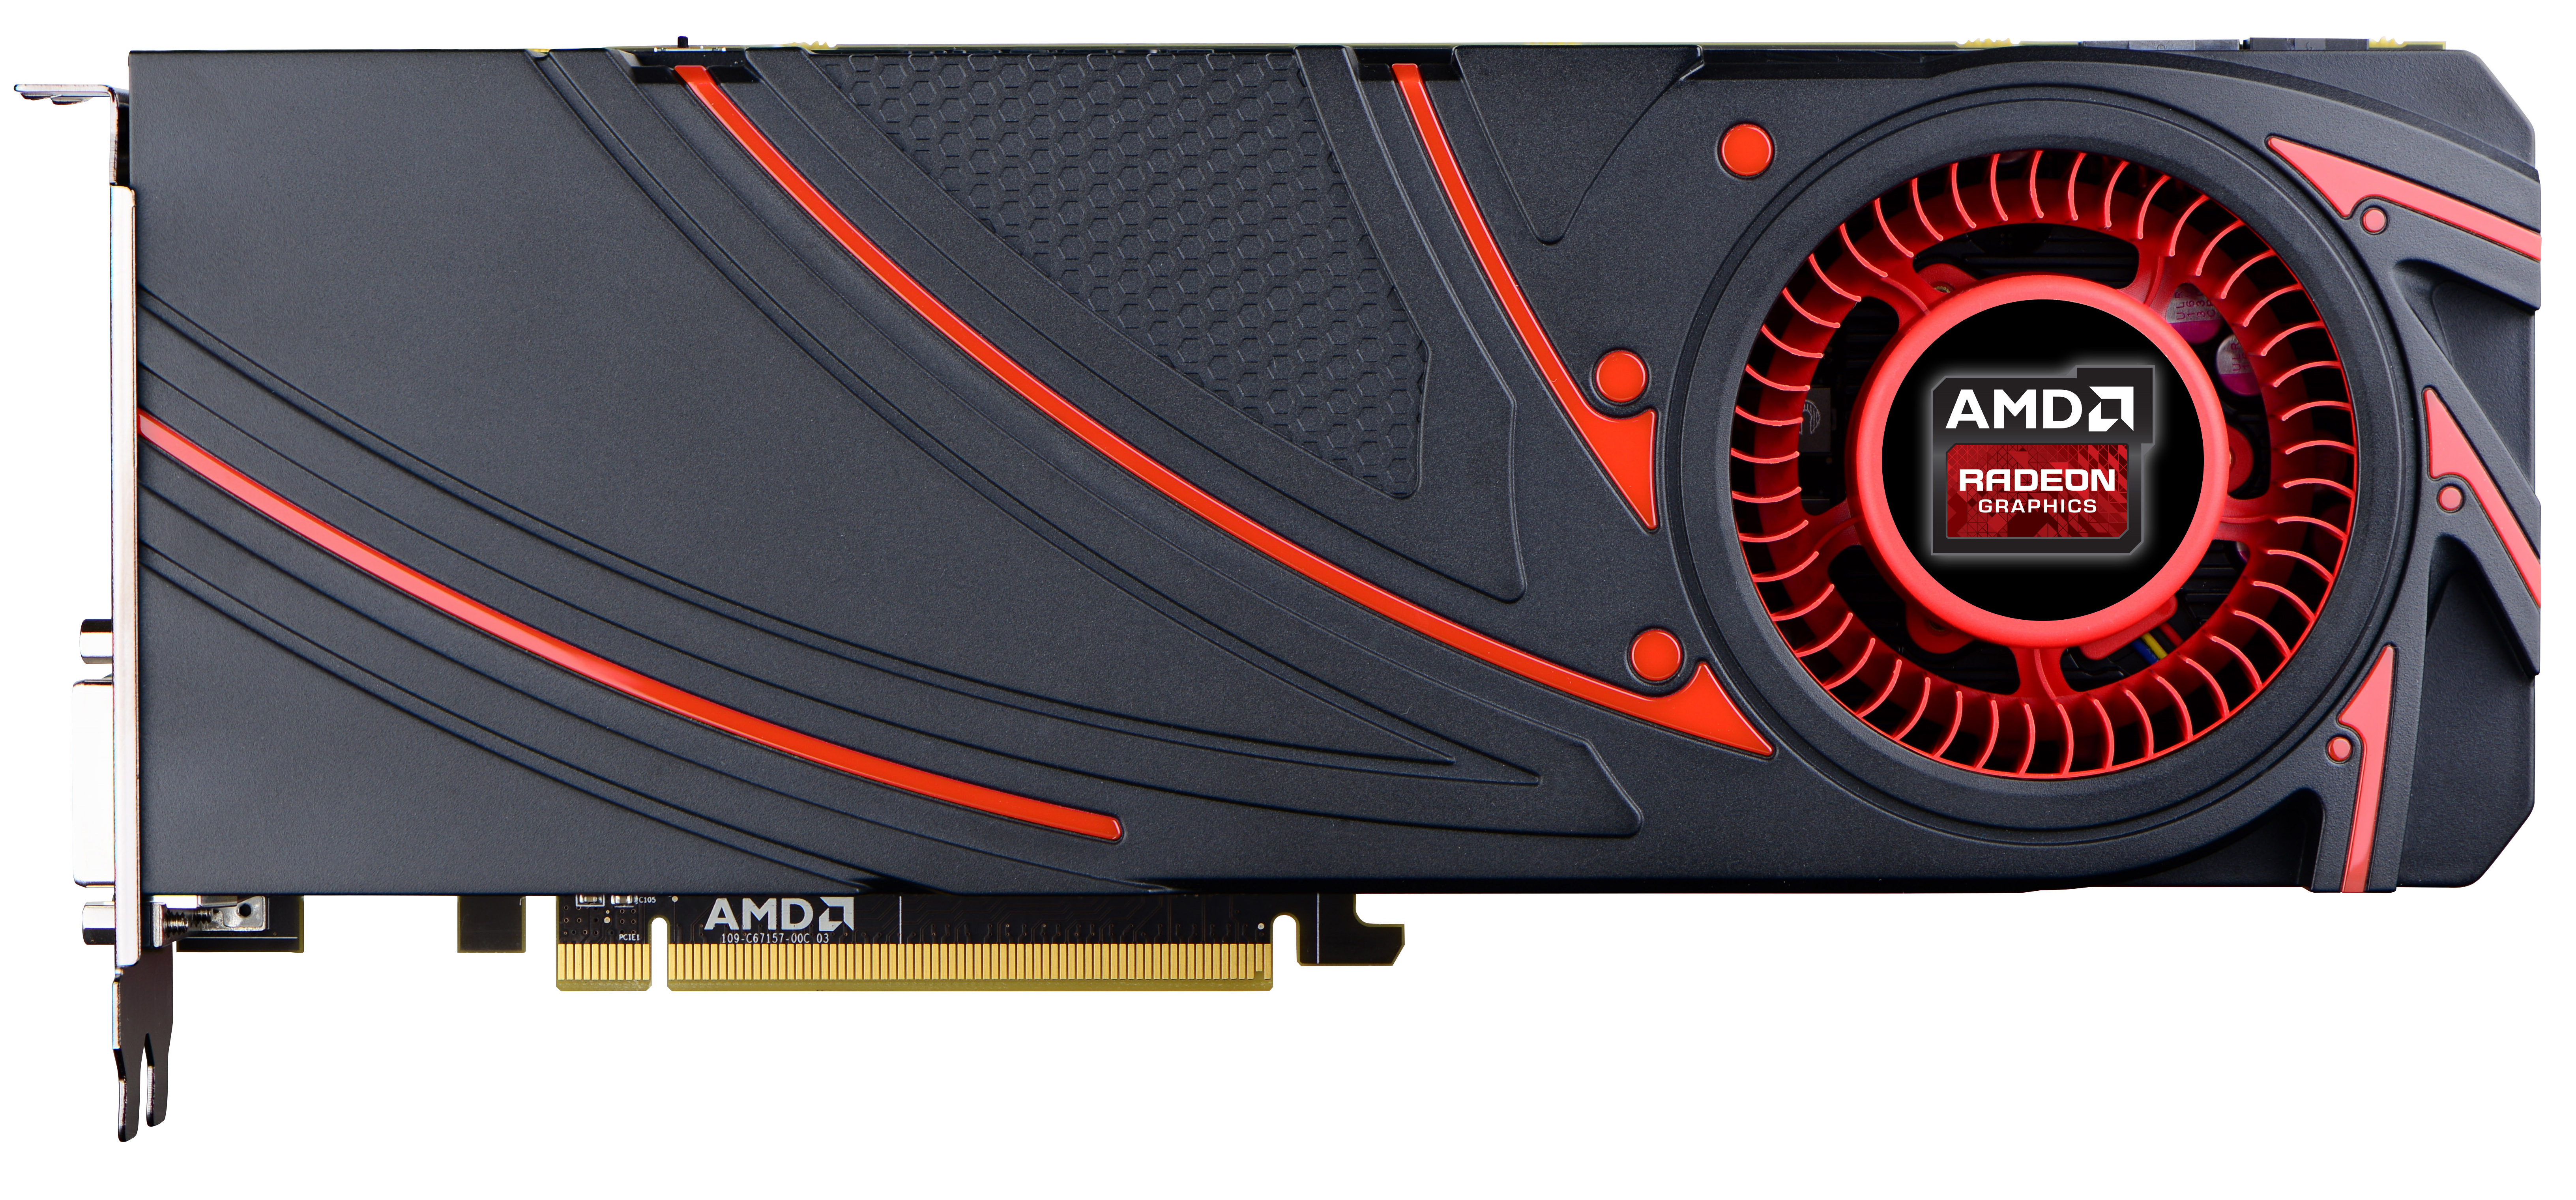 Best Video Cards March 2014 Vga His R7 250 2gb Ddr5 4k For Me 1200 2x Amd Radeon R9 290x